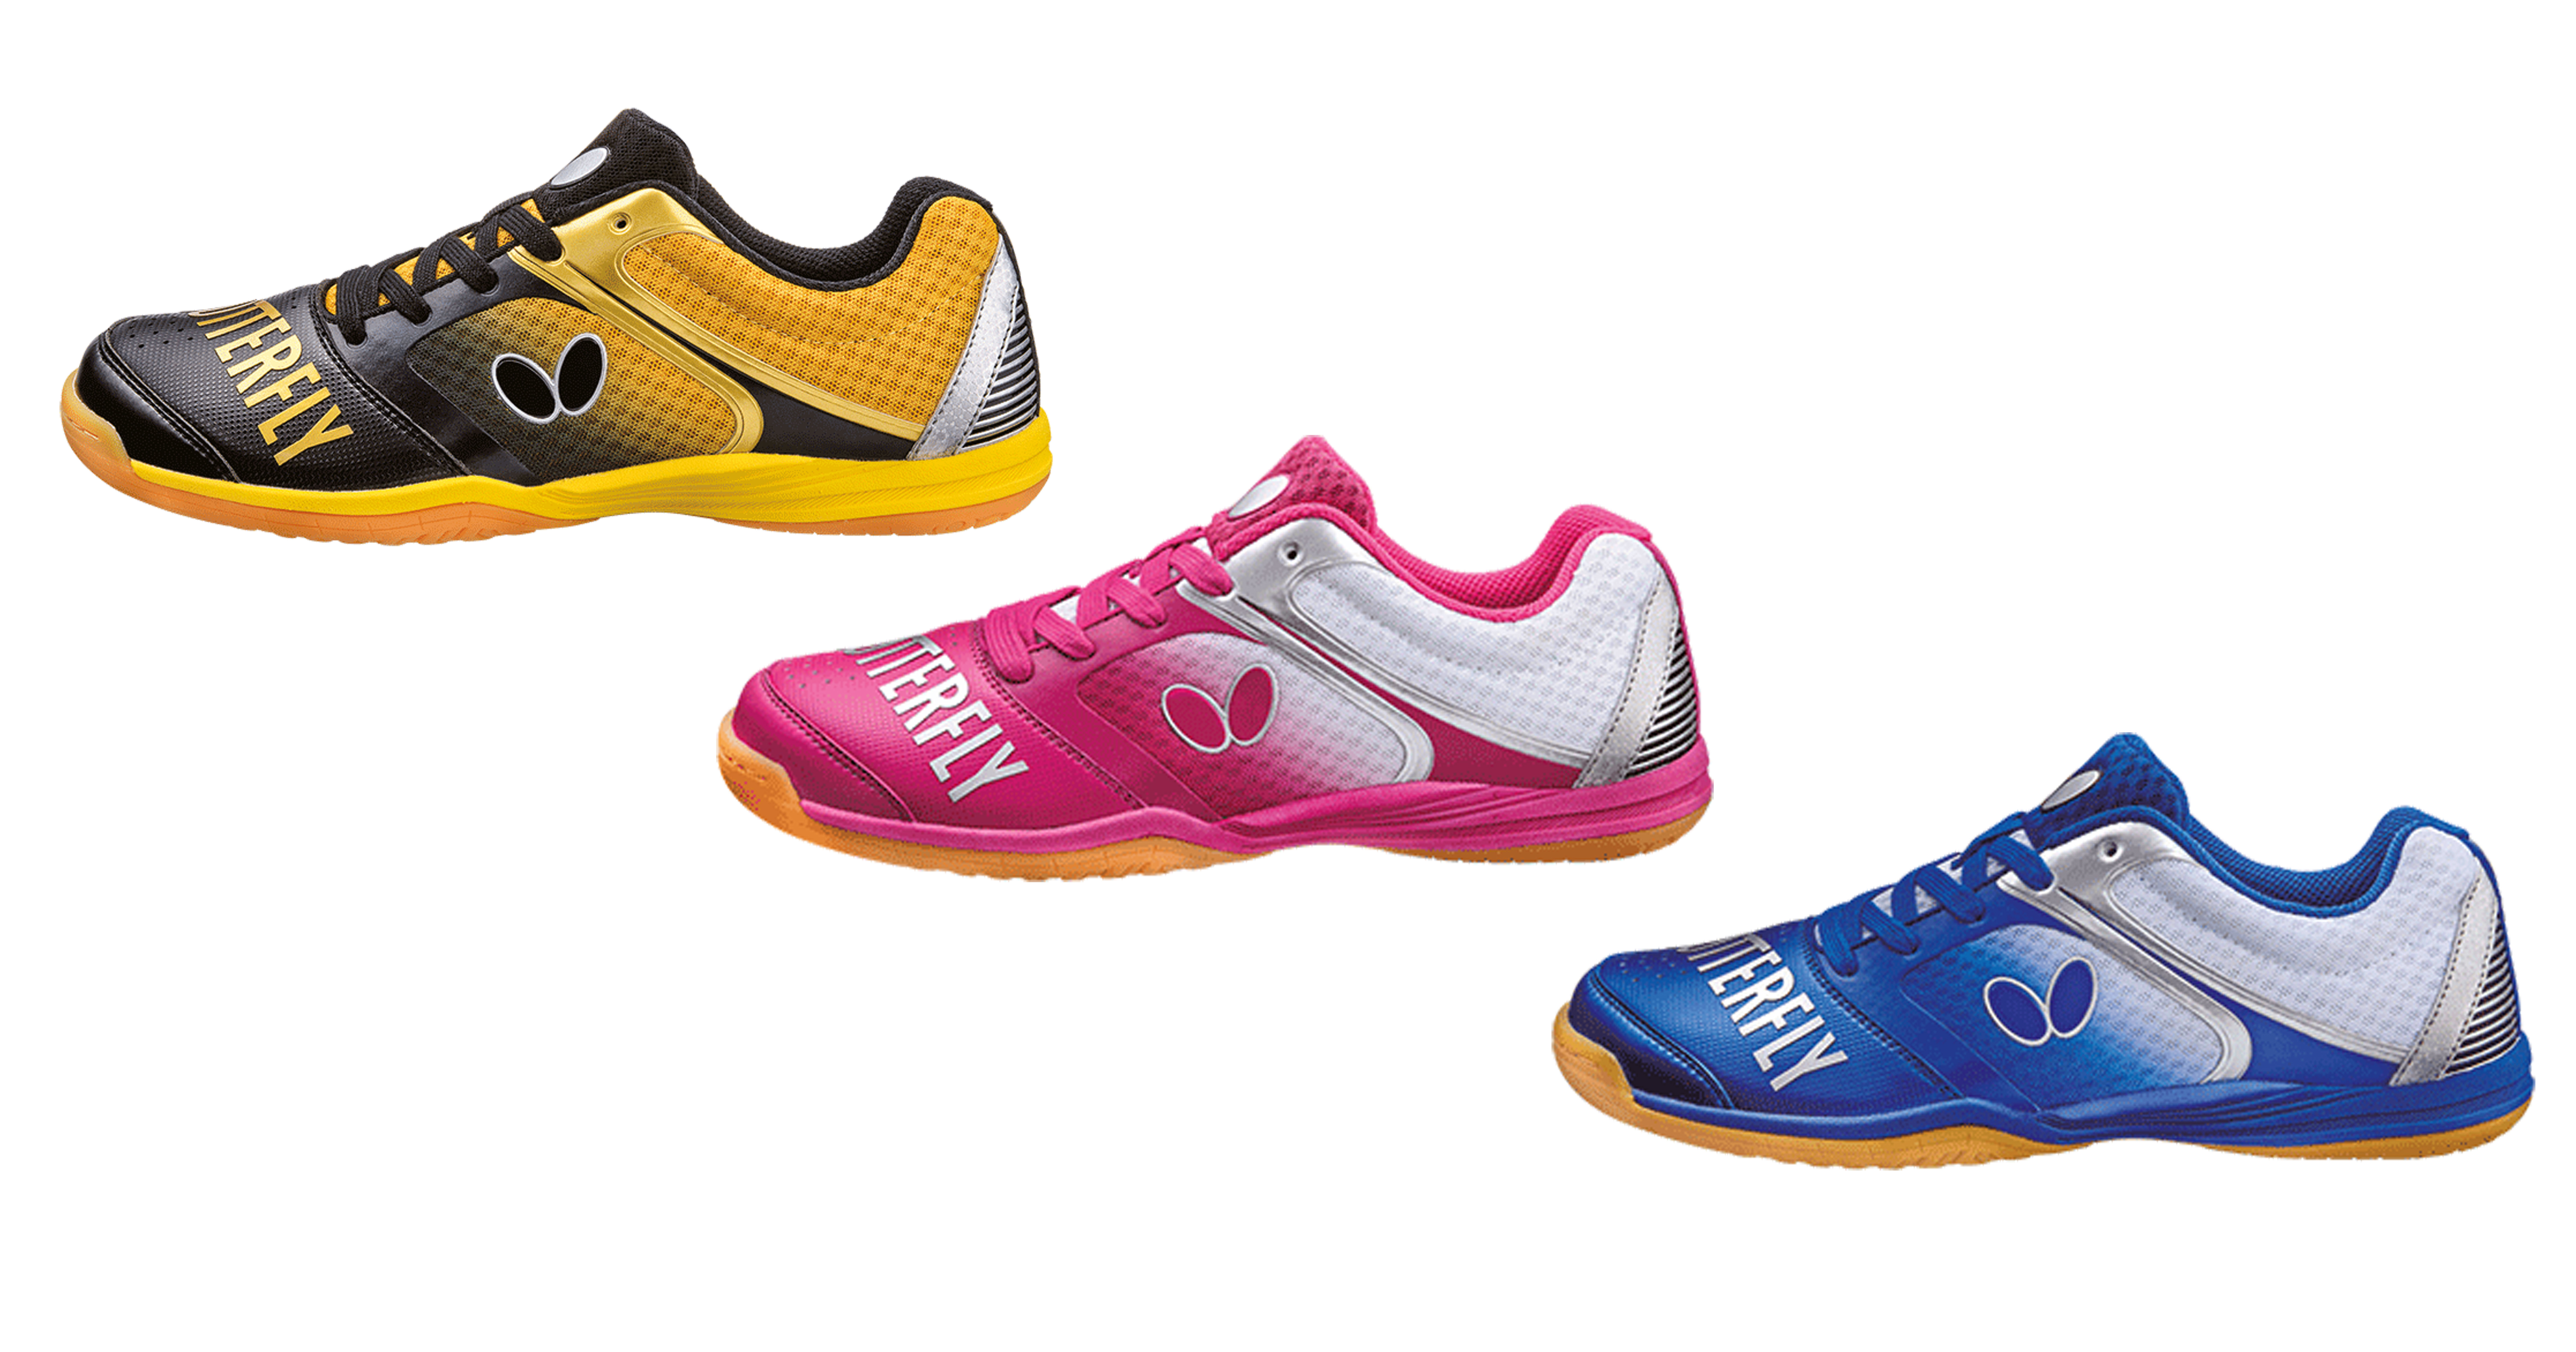 Zapatillas Butterfly Lezoline Groovy ya disponibles.